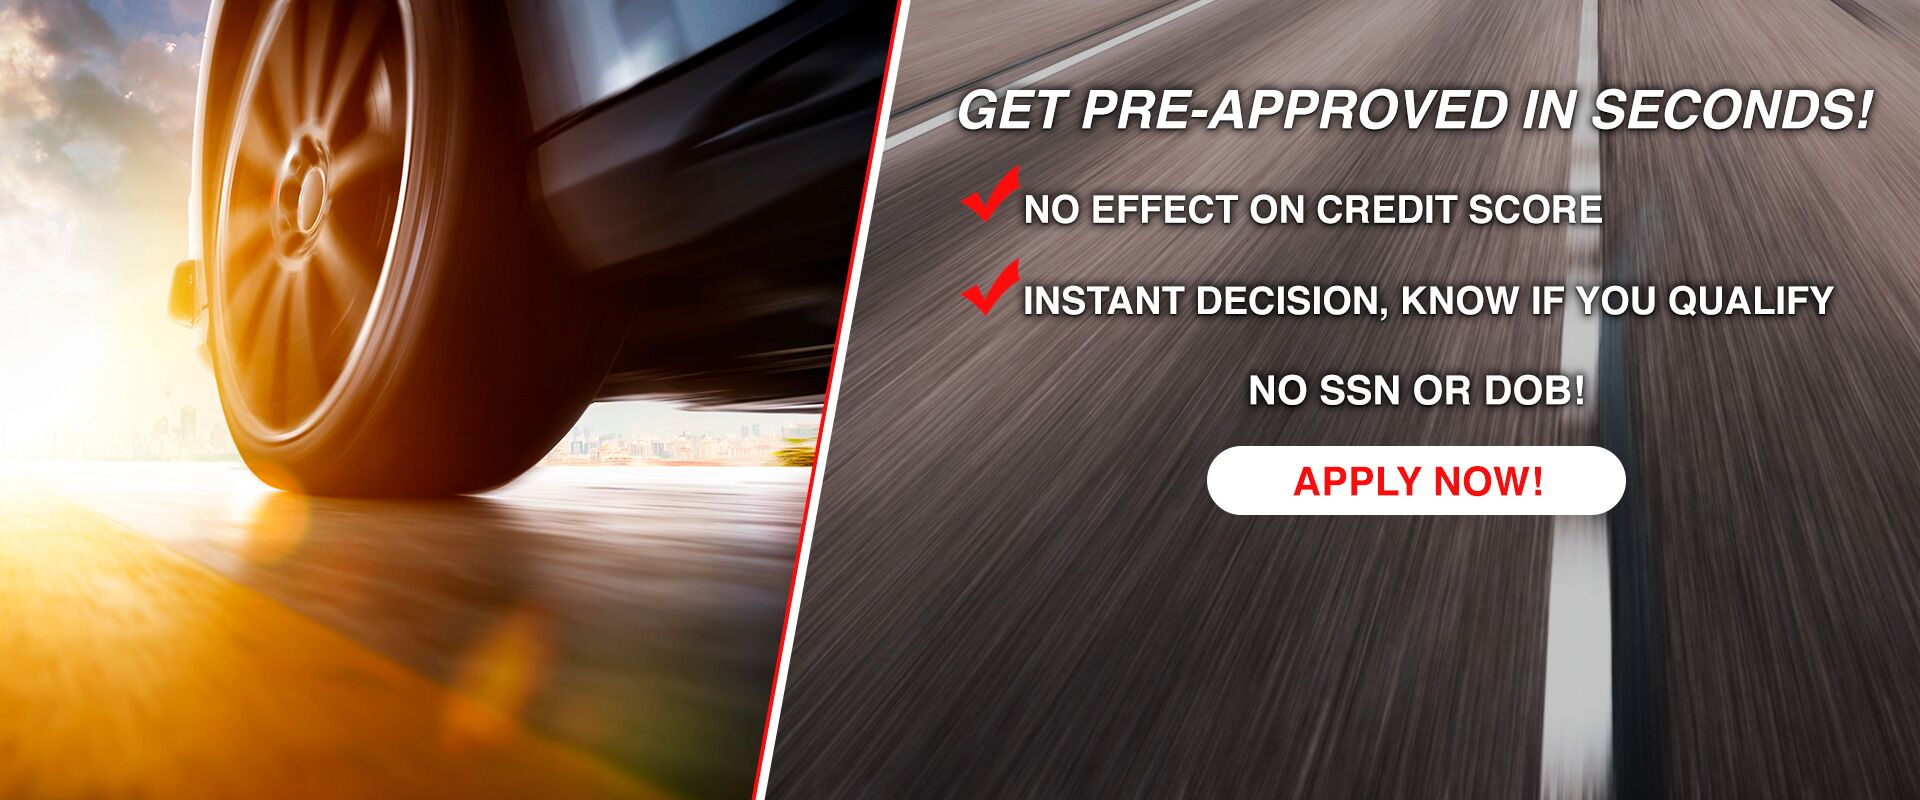 Get Pre-Approved in Seconds